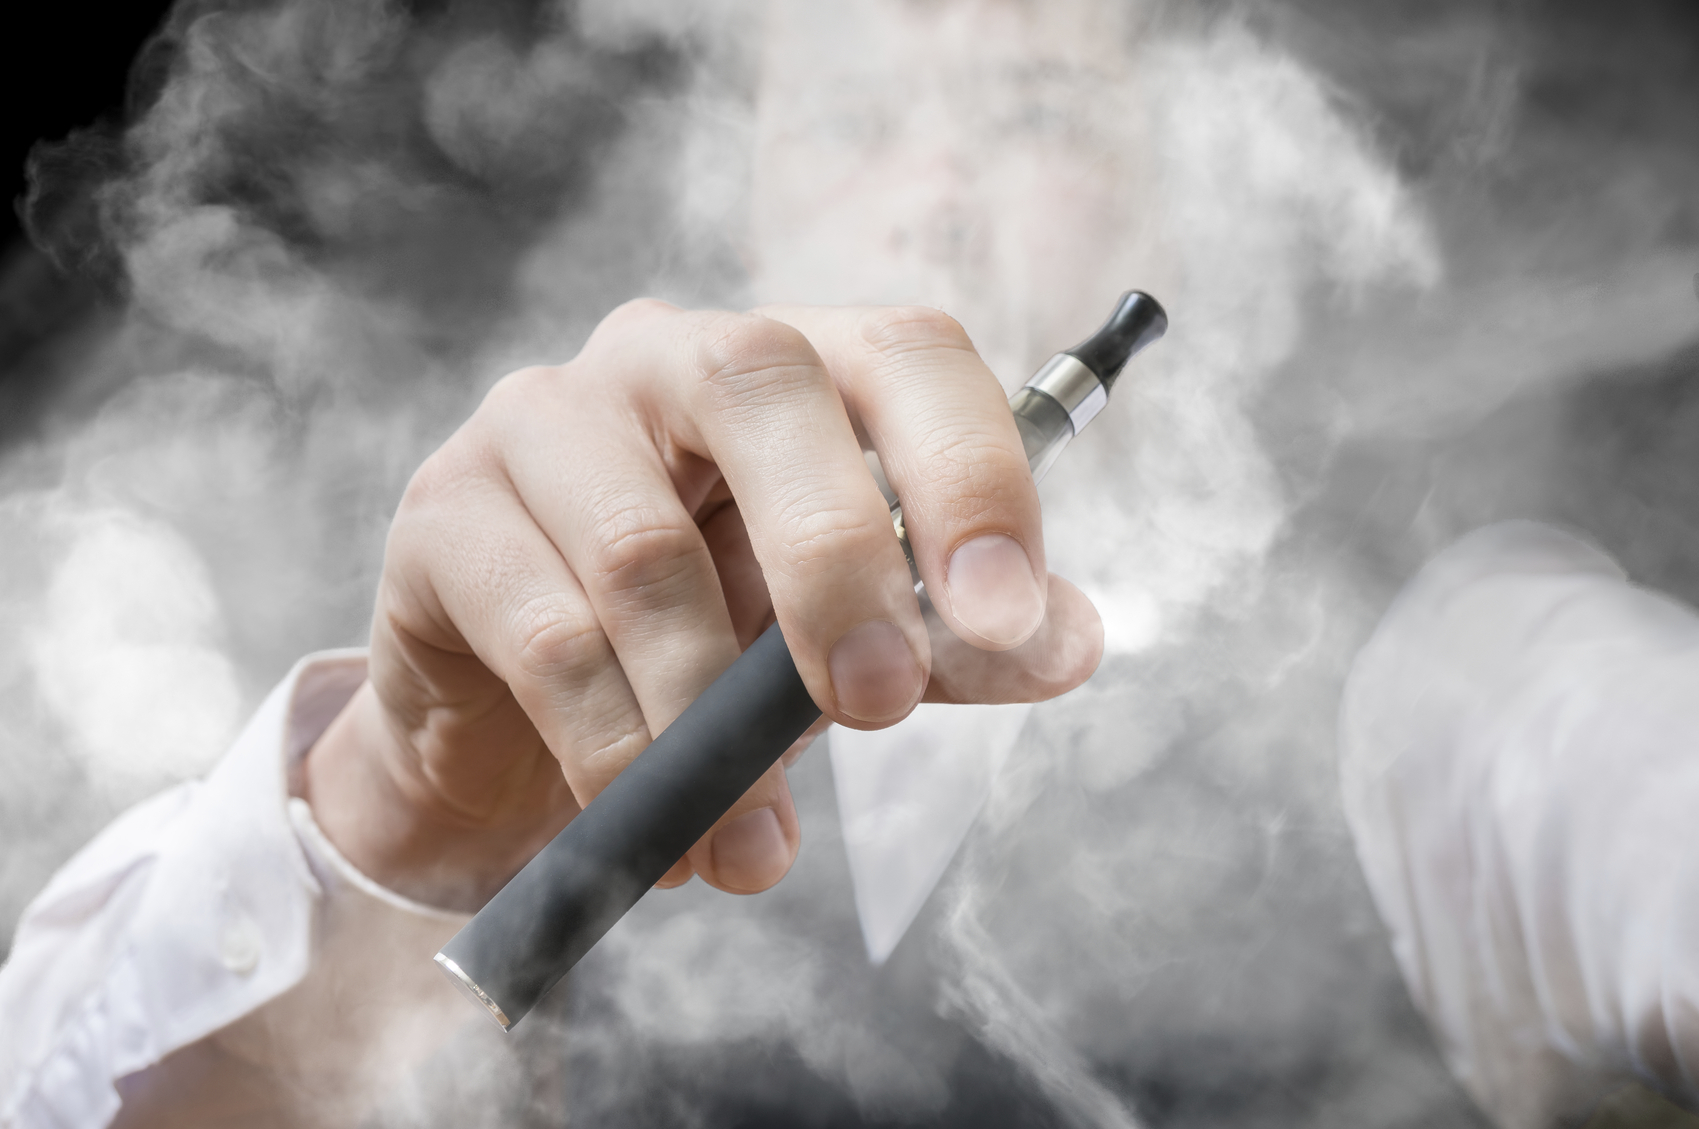 E-cigarette and Vaping Associated Lung Injury (EVALI)